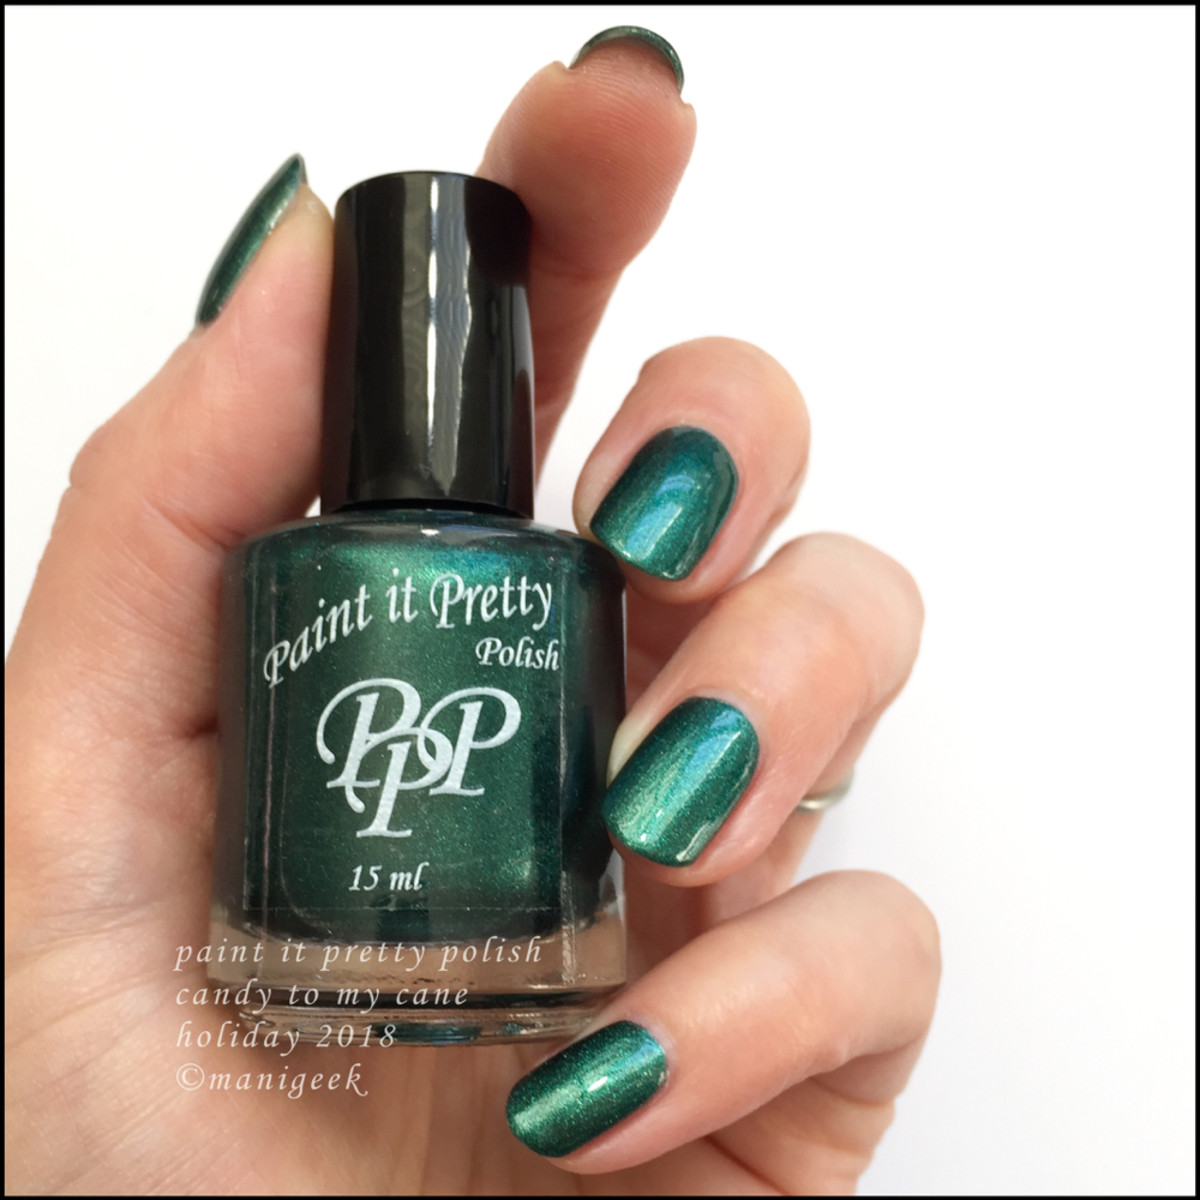 Paint it Pretty Polish Candy to my Cane - Holiday 2018 Collection